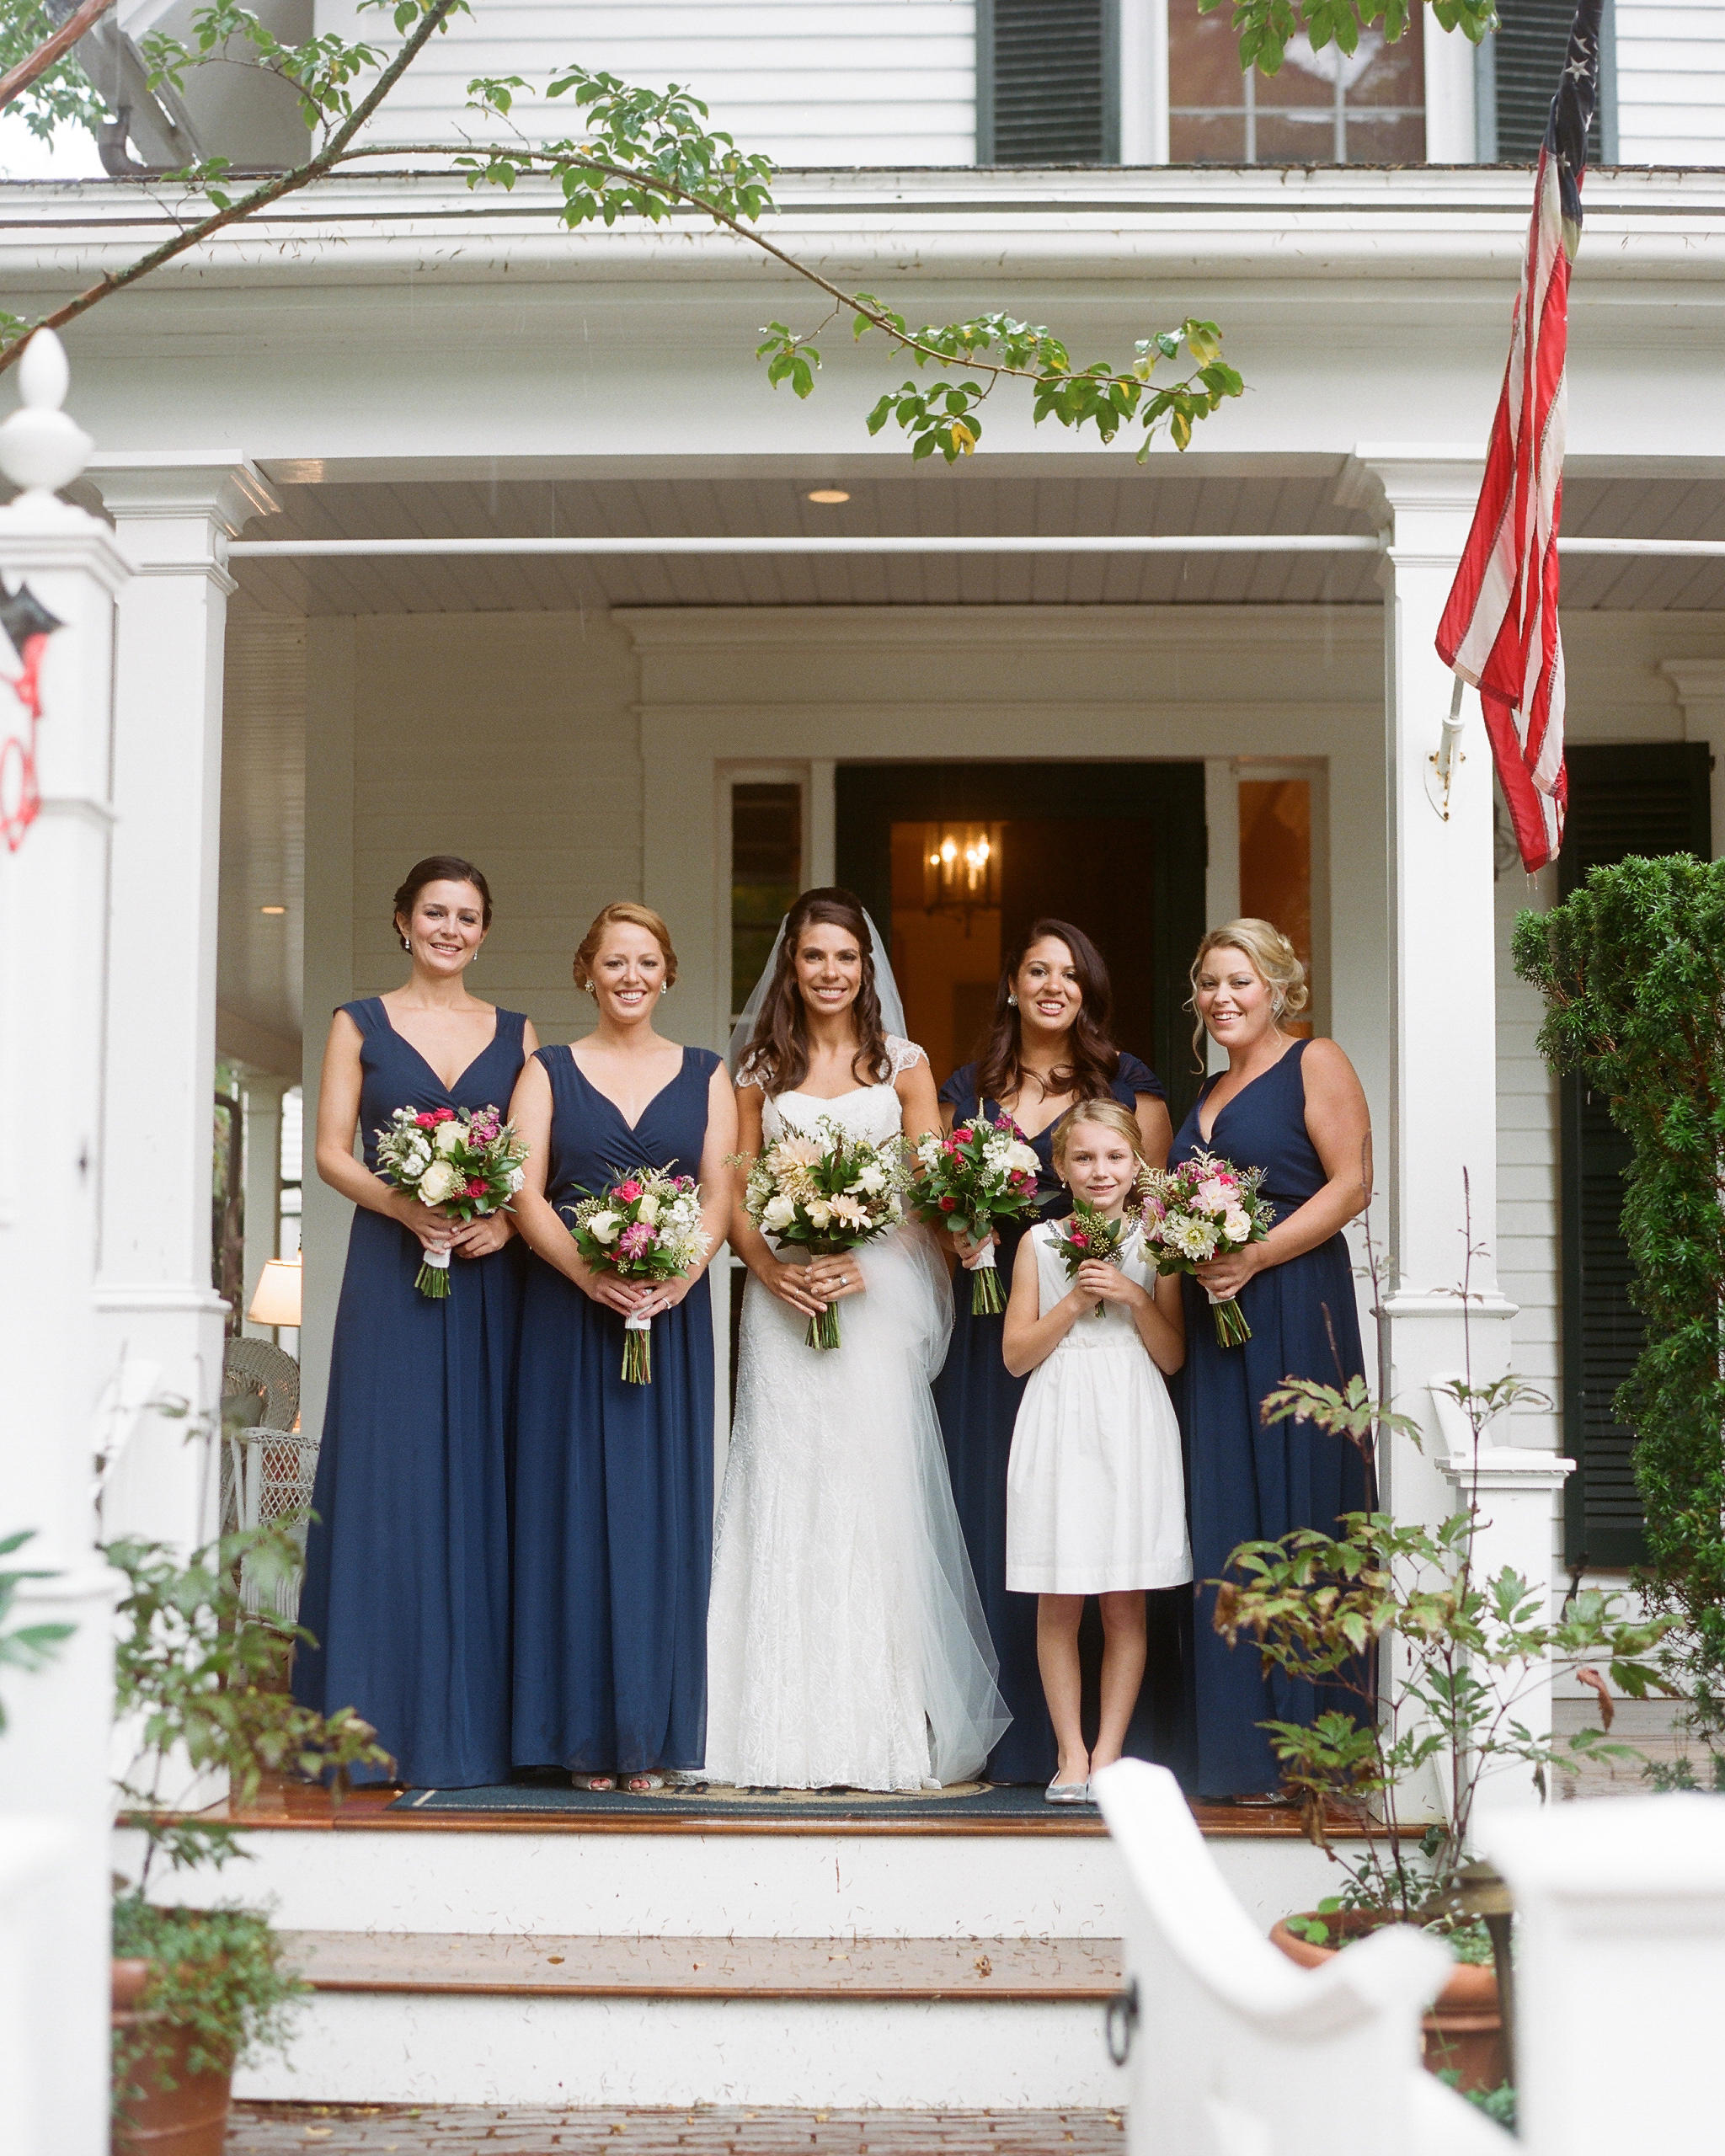 lindsay-garrett-wedding-bridesmaids-0357-s111850-0415.jpg